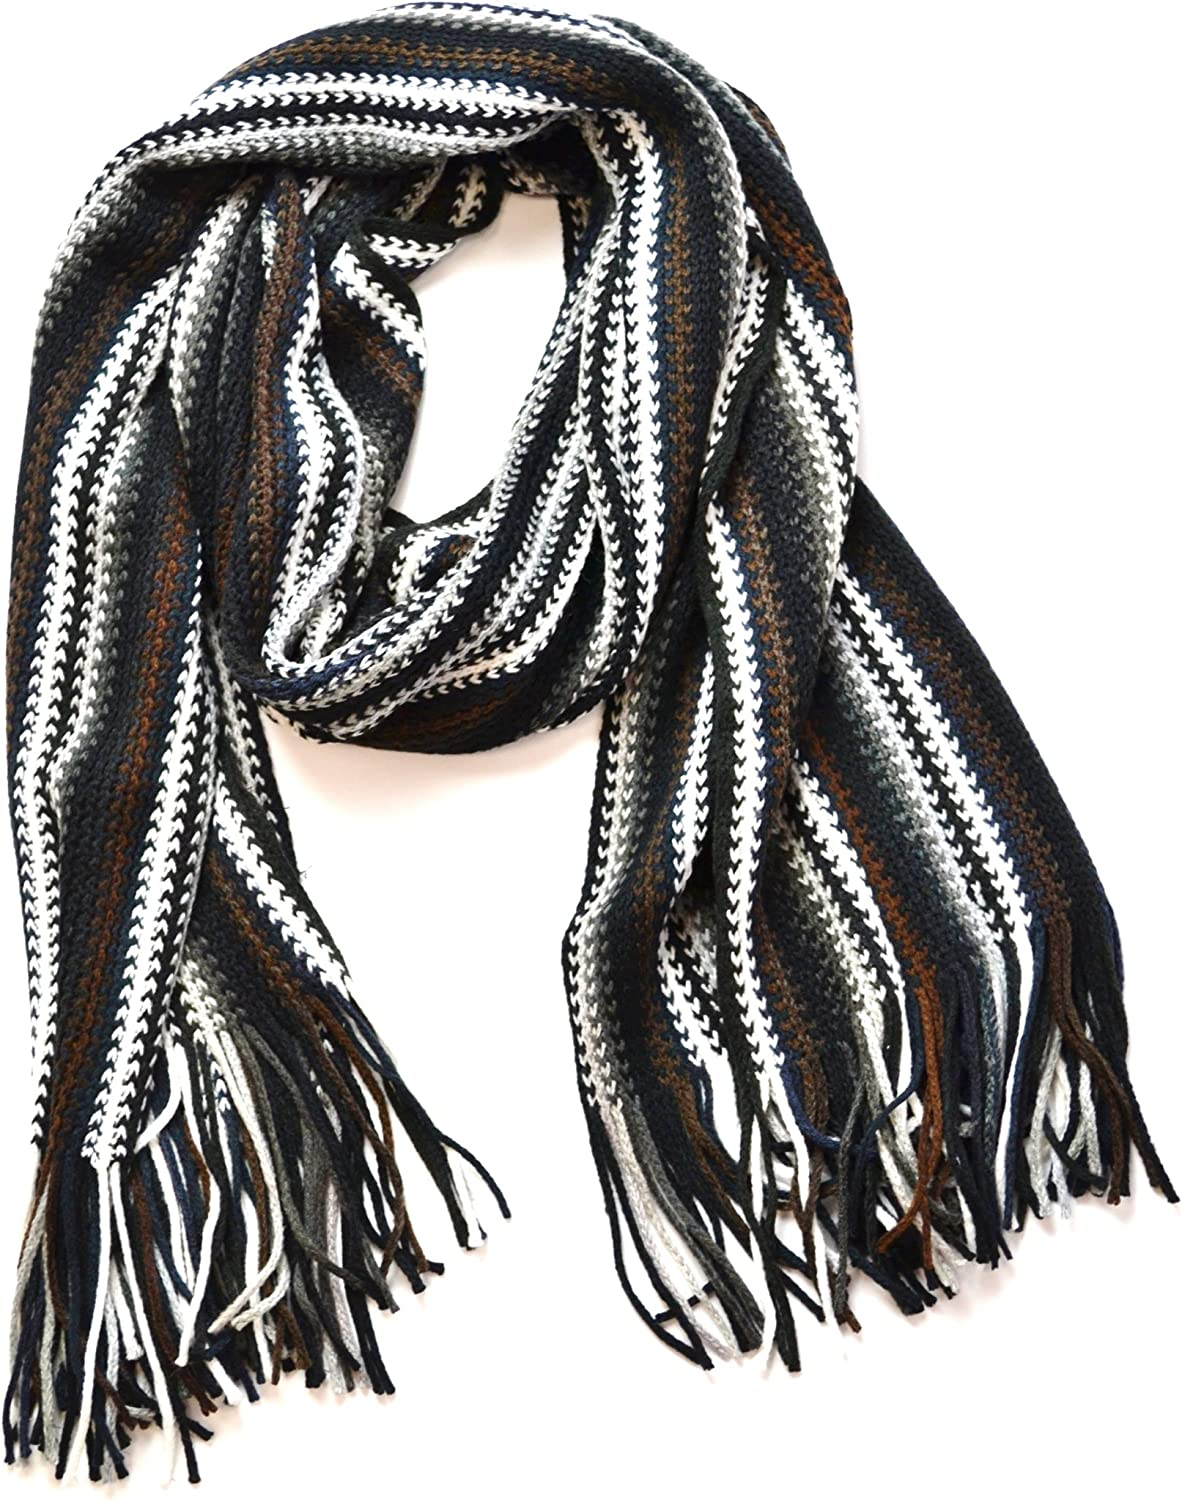 Anytime Scarf Black Striped Knitted Men's Scarf Stole Fashion Scarves